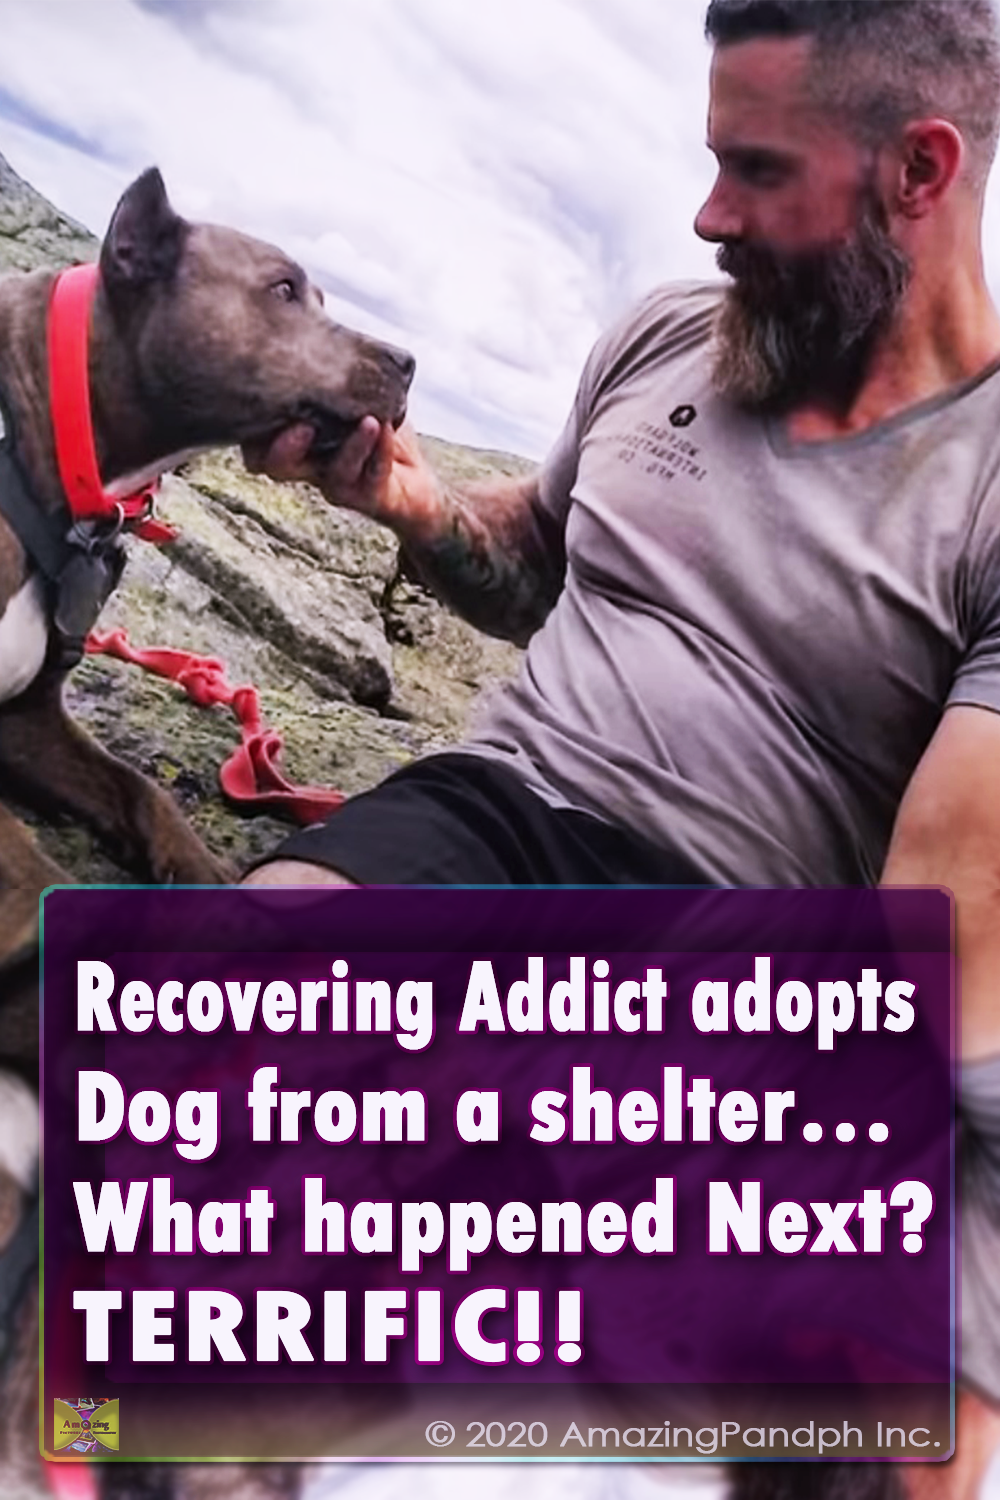 animal, video, animals ,dogs, cats, dog videos, cat videos, pit bull, pibble, recovery, addiction, hiking, hiking with dog, dog friendship, best stories, terrific, awesome, unbelievable,